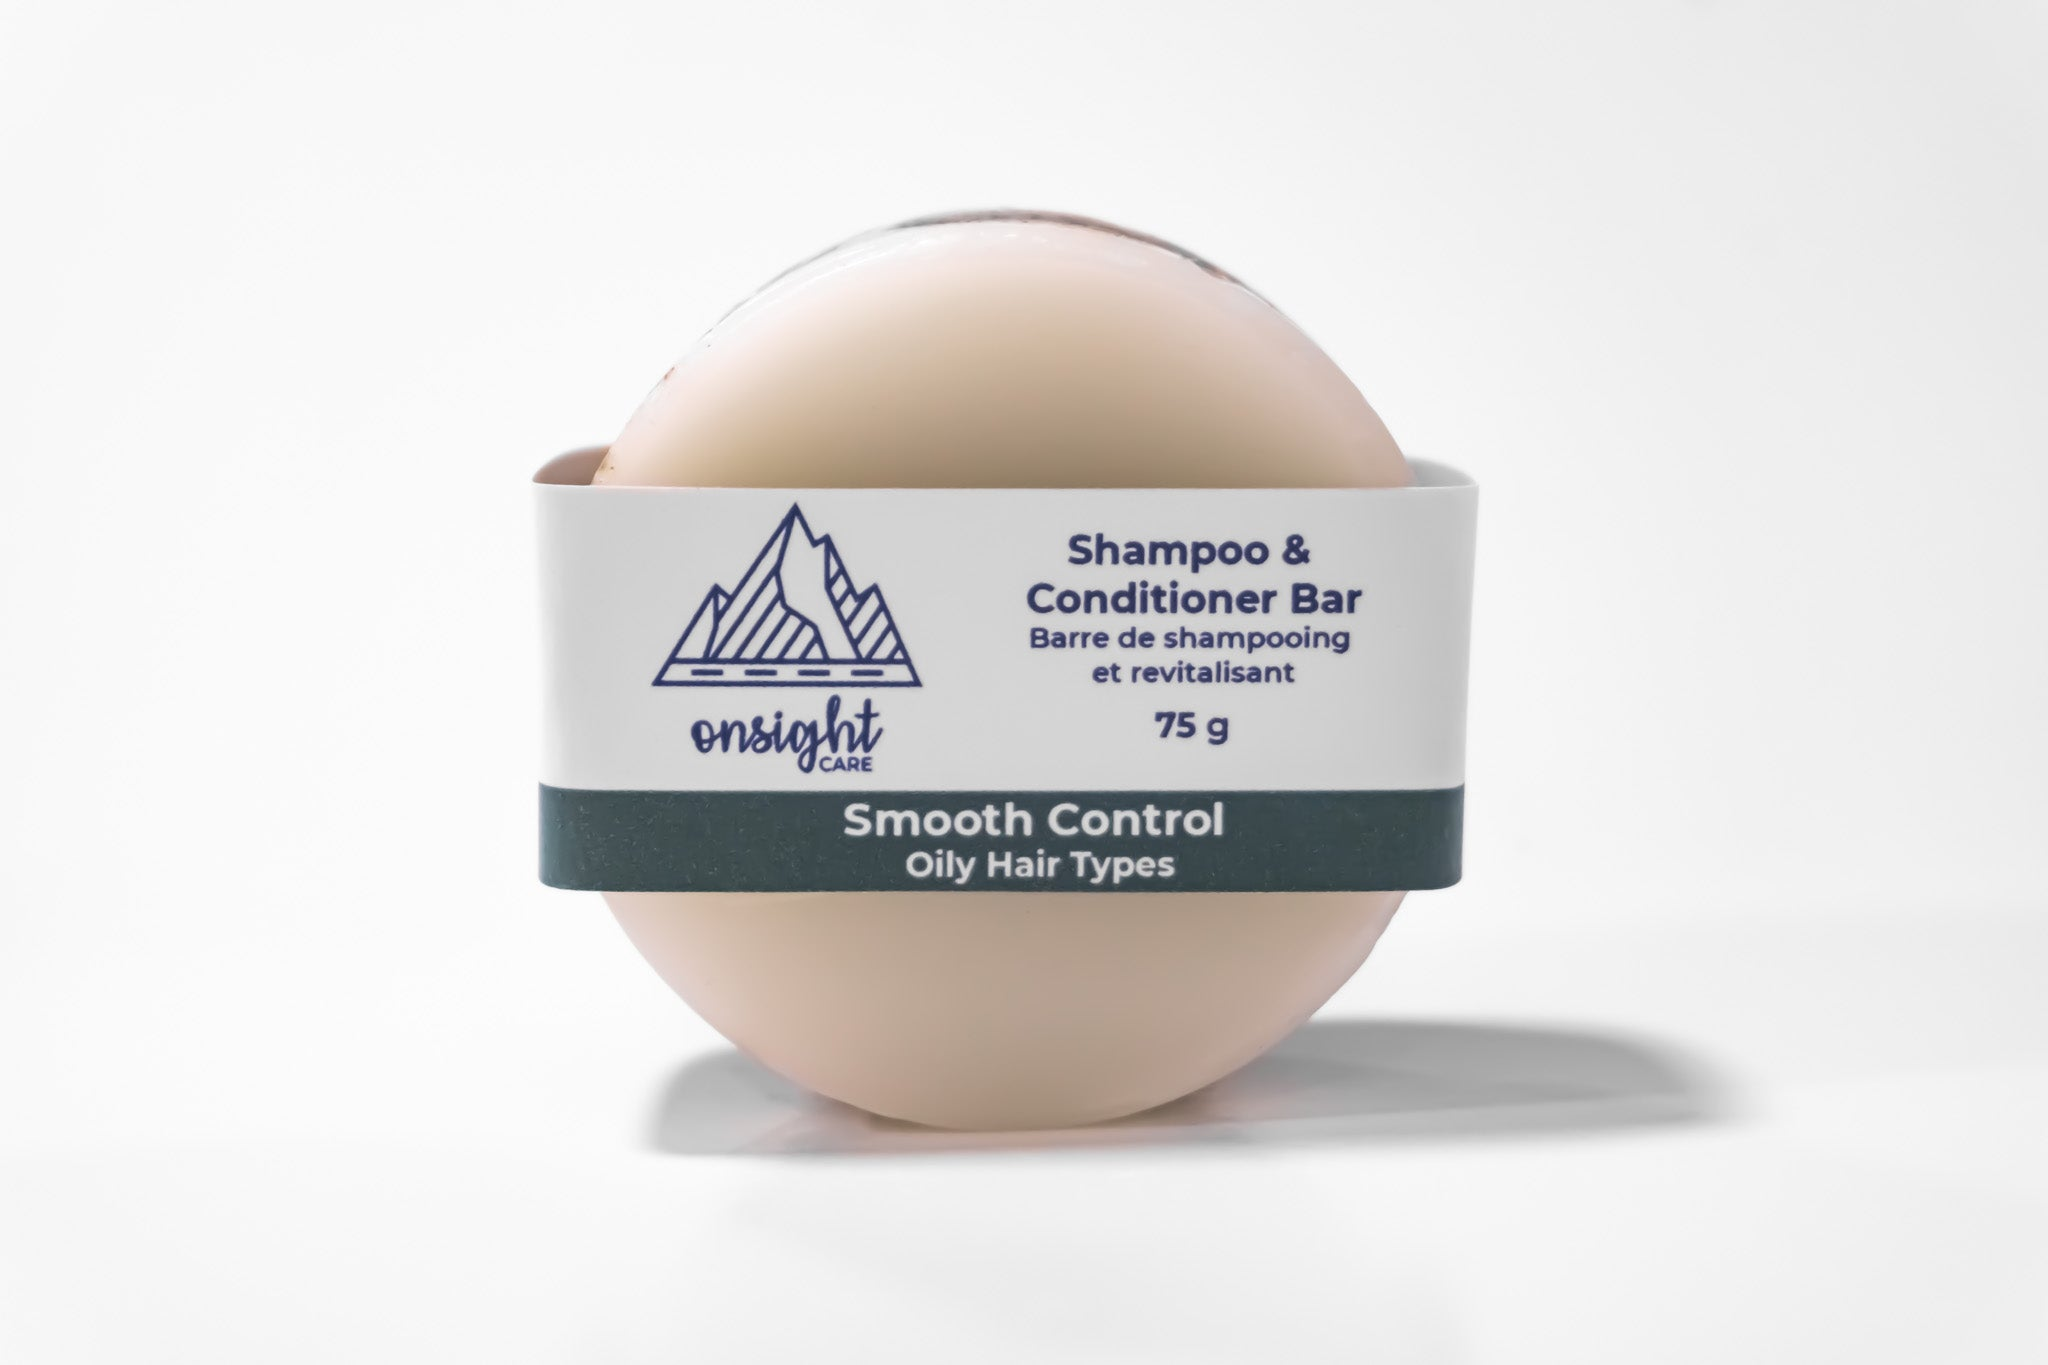 Smooth Control Shampoo & Conditioner Bar